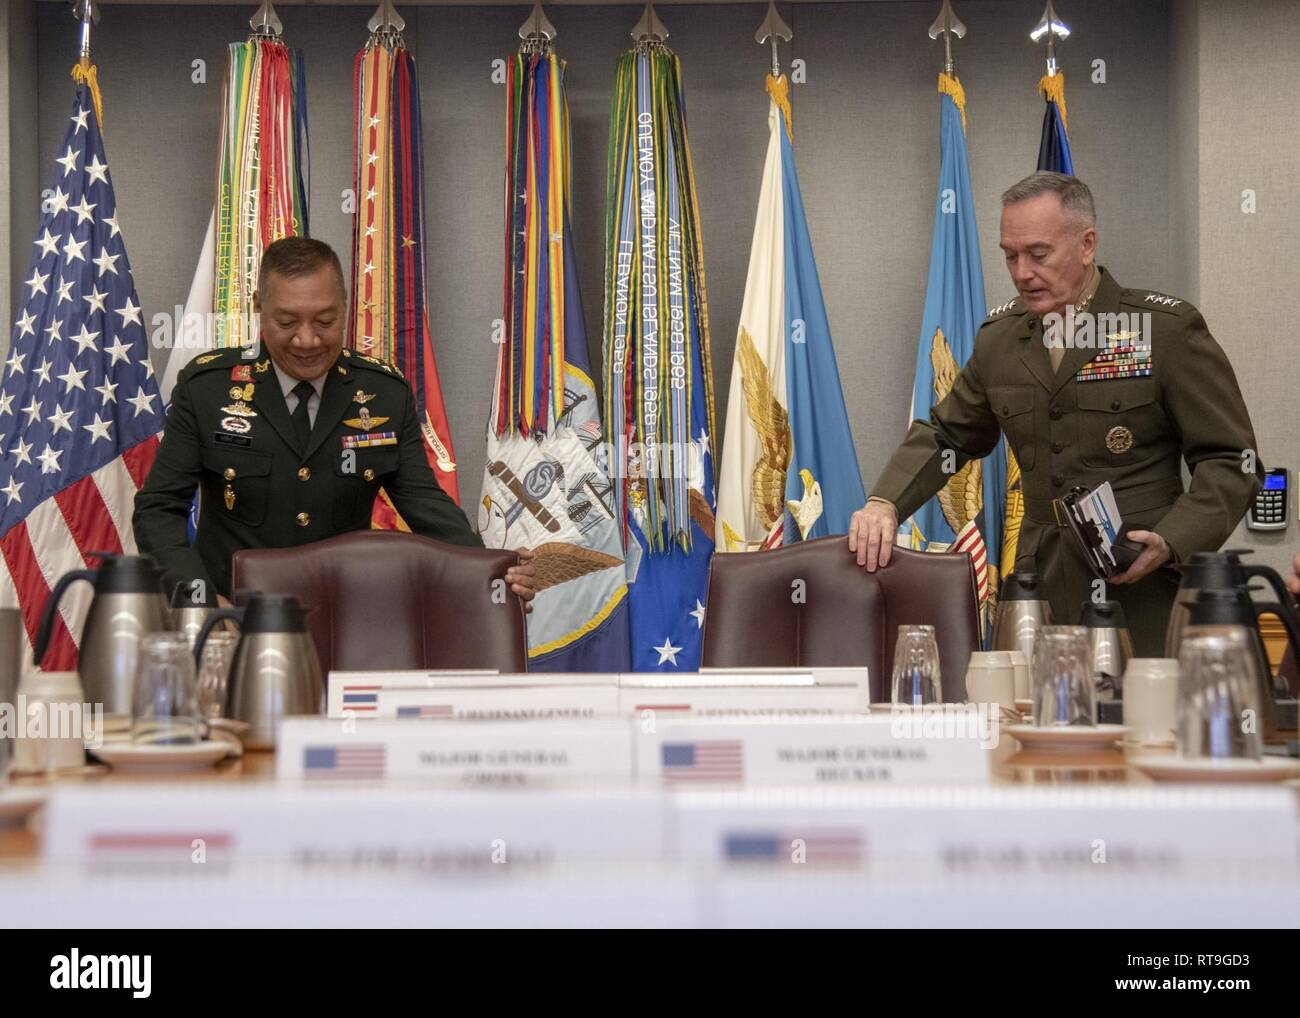 Marine Corps Gen. Joe Dunford, chairman of the Joint Chiefs of Staff, hosts his counterpart Chief of Defence of the Royal Thai Armed Forces Gen. Pornpipat Benyasri at the Pentagon, Jan. 29, 2019. DoD Stock Photo